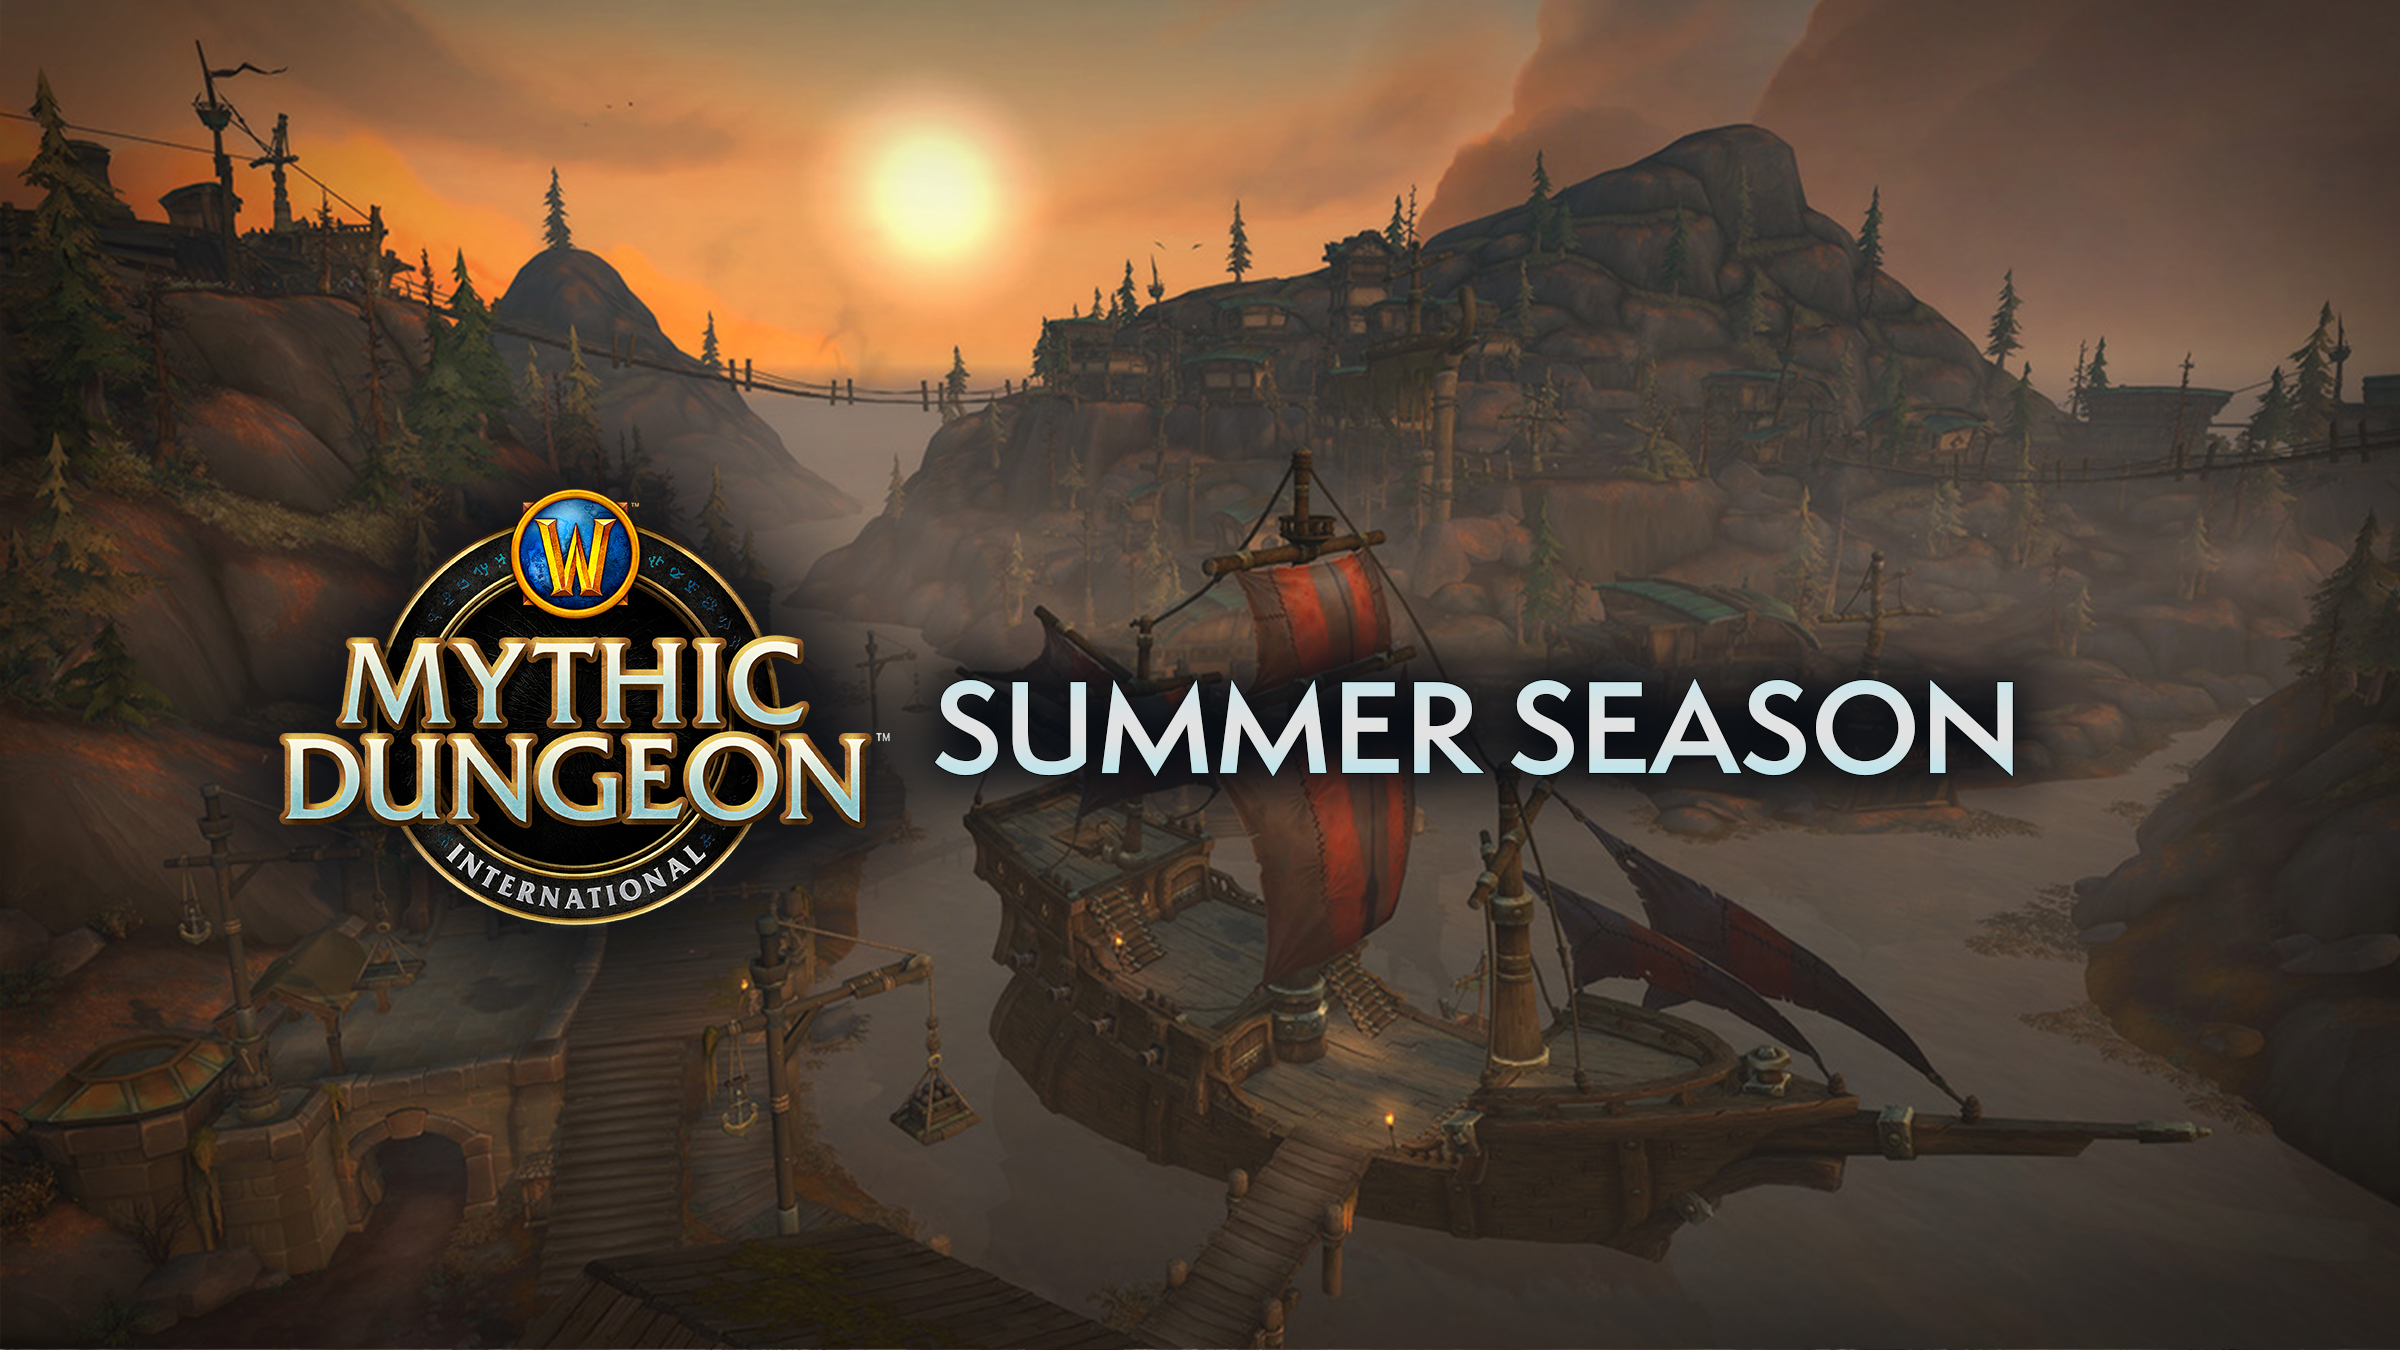 The Mythic Dungeon International Summer Season Starts Soon!